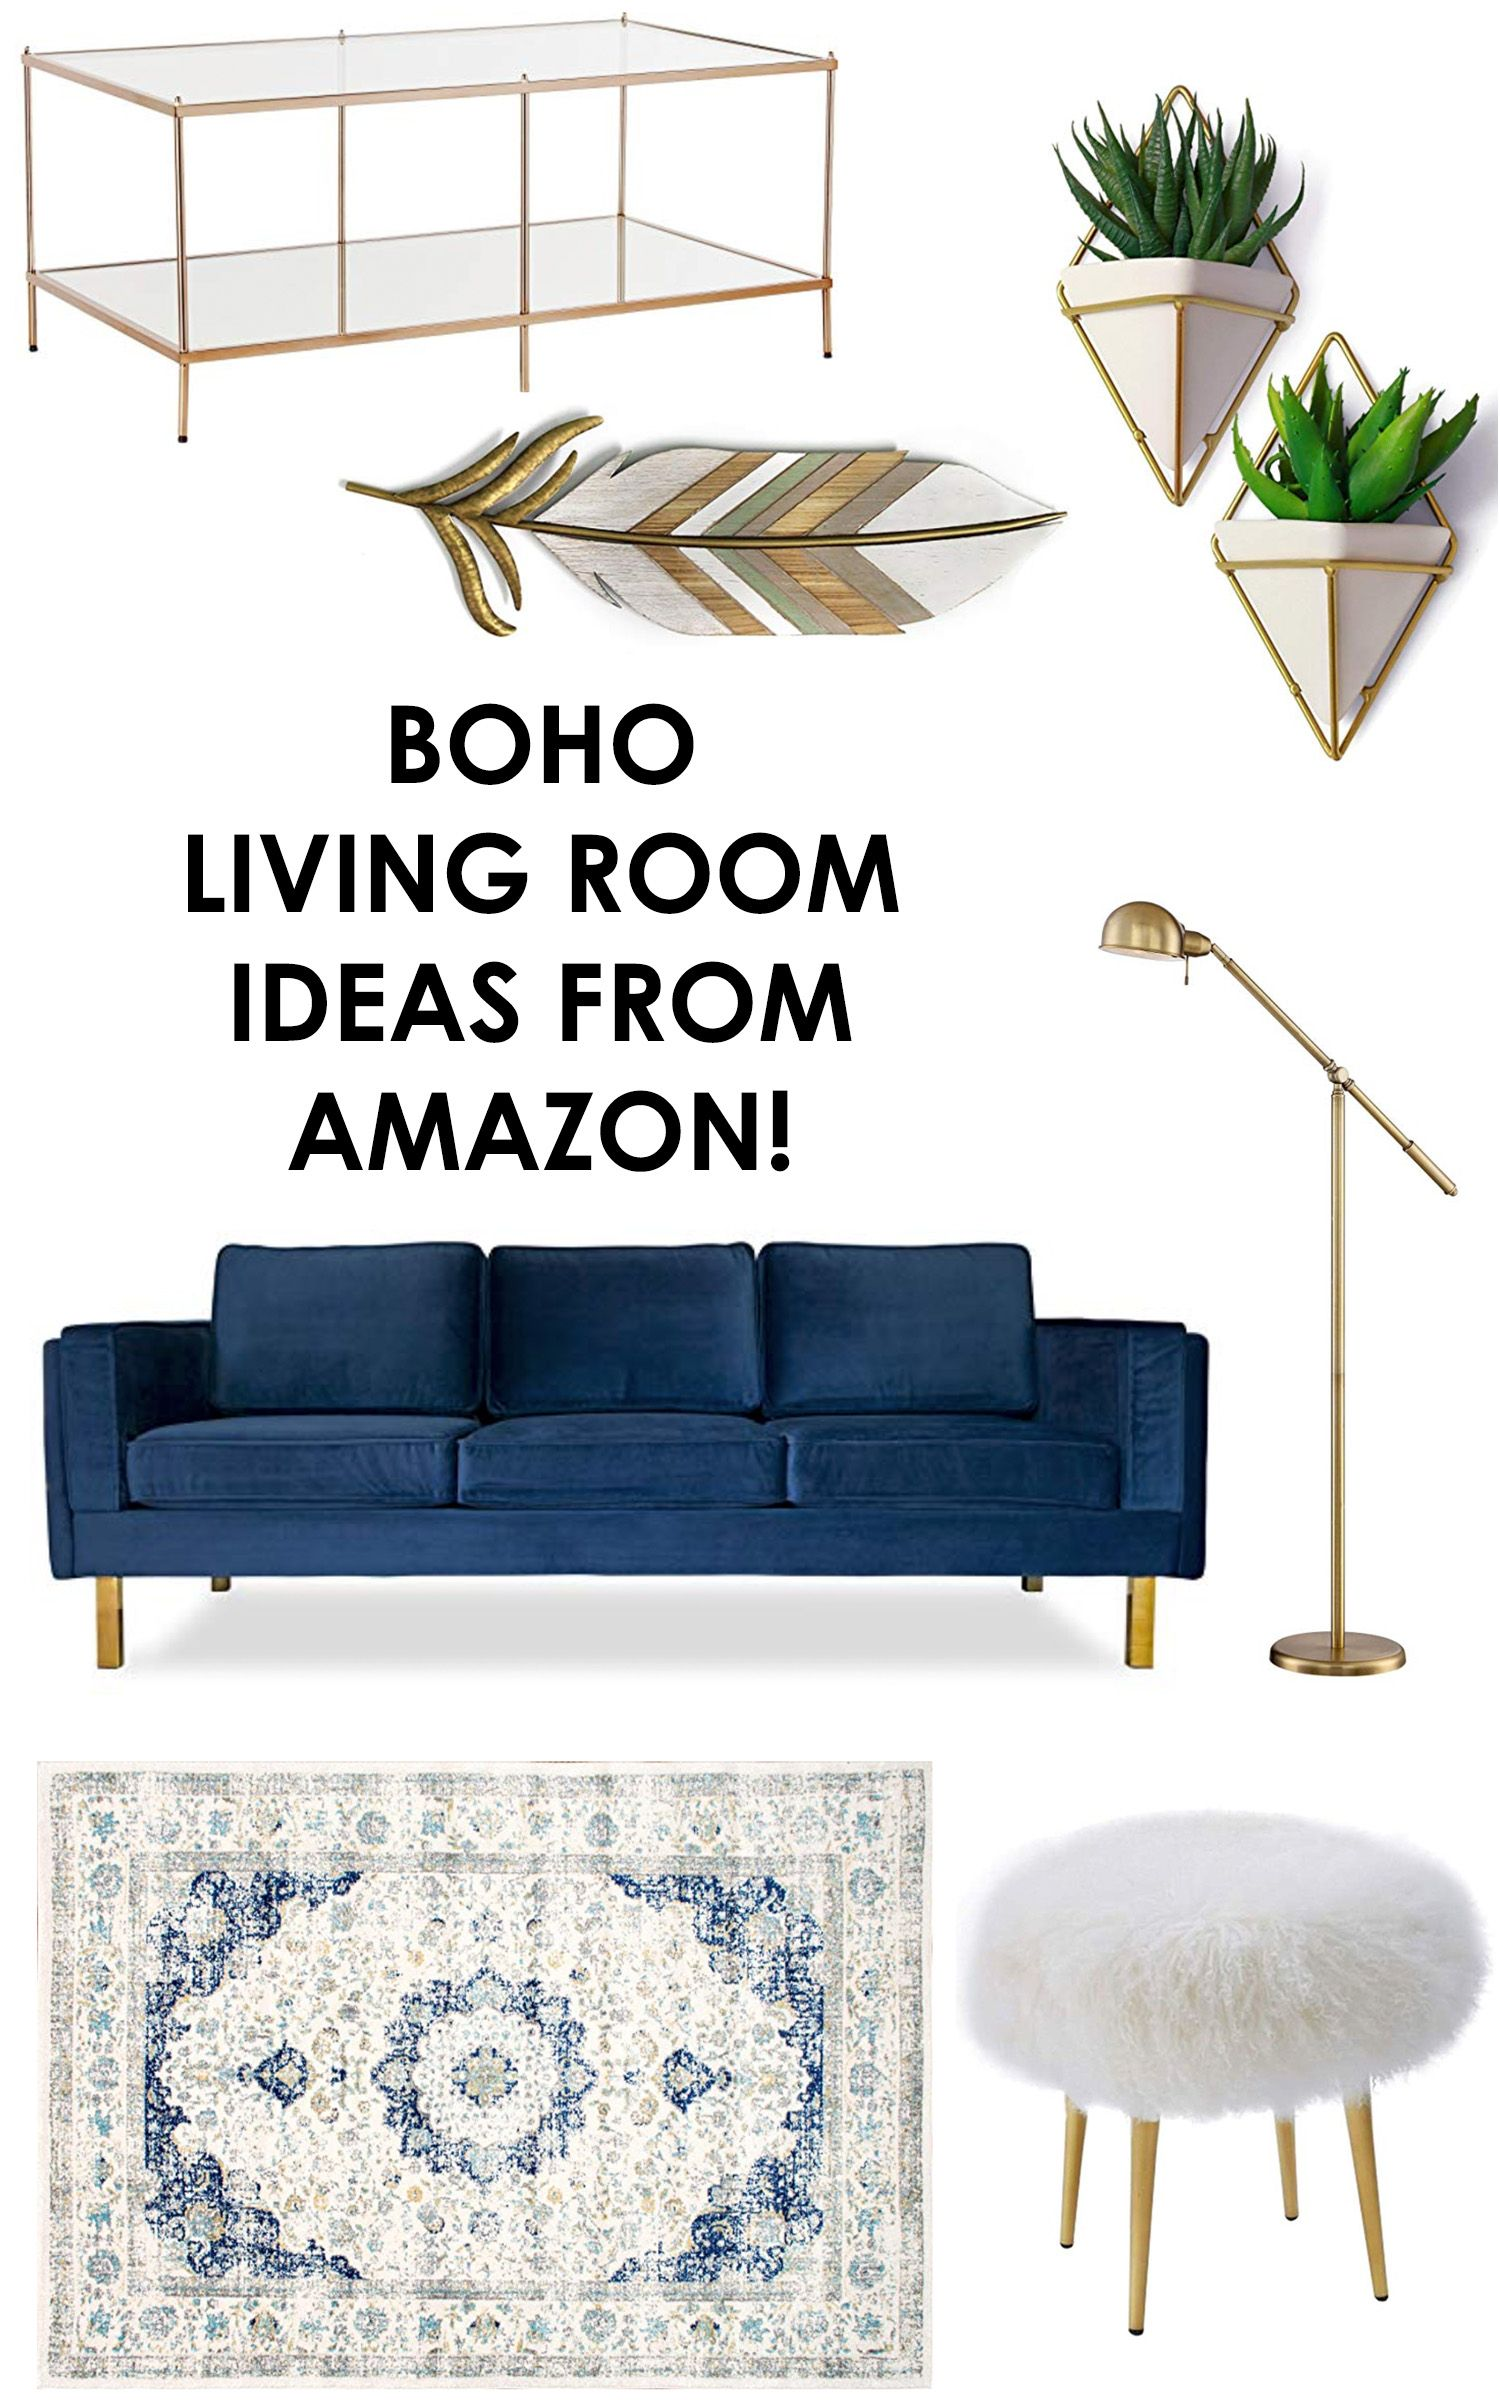 Boho Living Room Ideas Boho Decor Mid Century Modern Decor Gold Coffee Table Pla Blue Couch Living Room Blue Sofas Living Room Blue Velvet Sofa Living Room